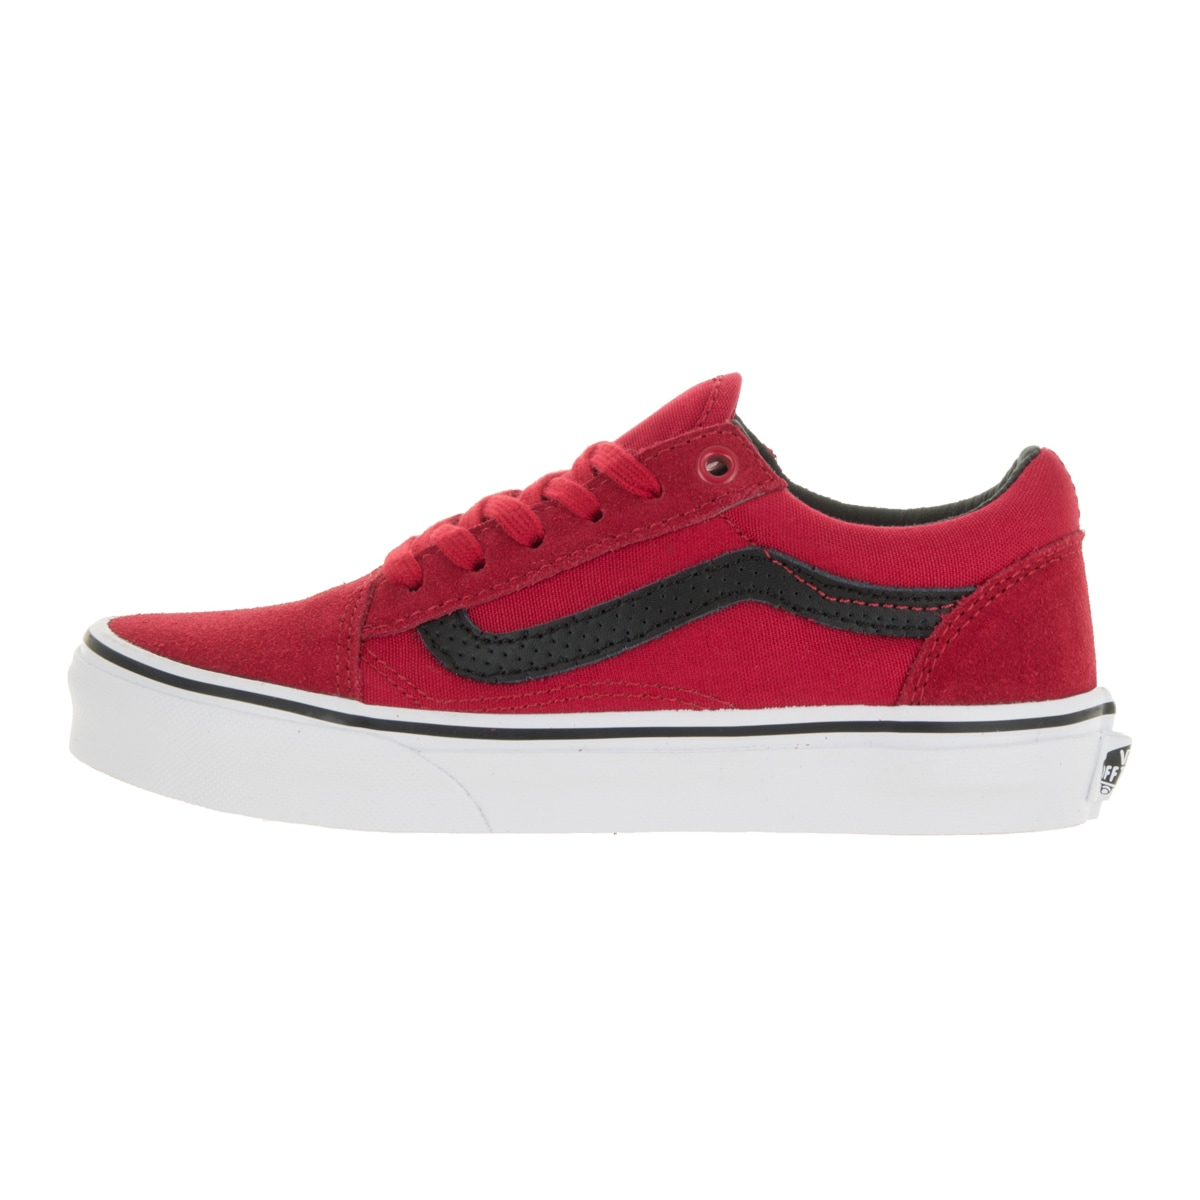 7a1dae8f6bbe Shop Vans Kids Old Skool (C P) Racing Red Black Suede Skate Shoe - Free  Shipping Today - Overstock - 13344506